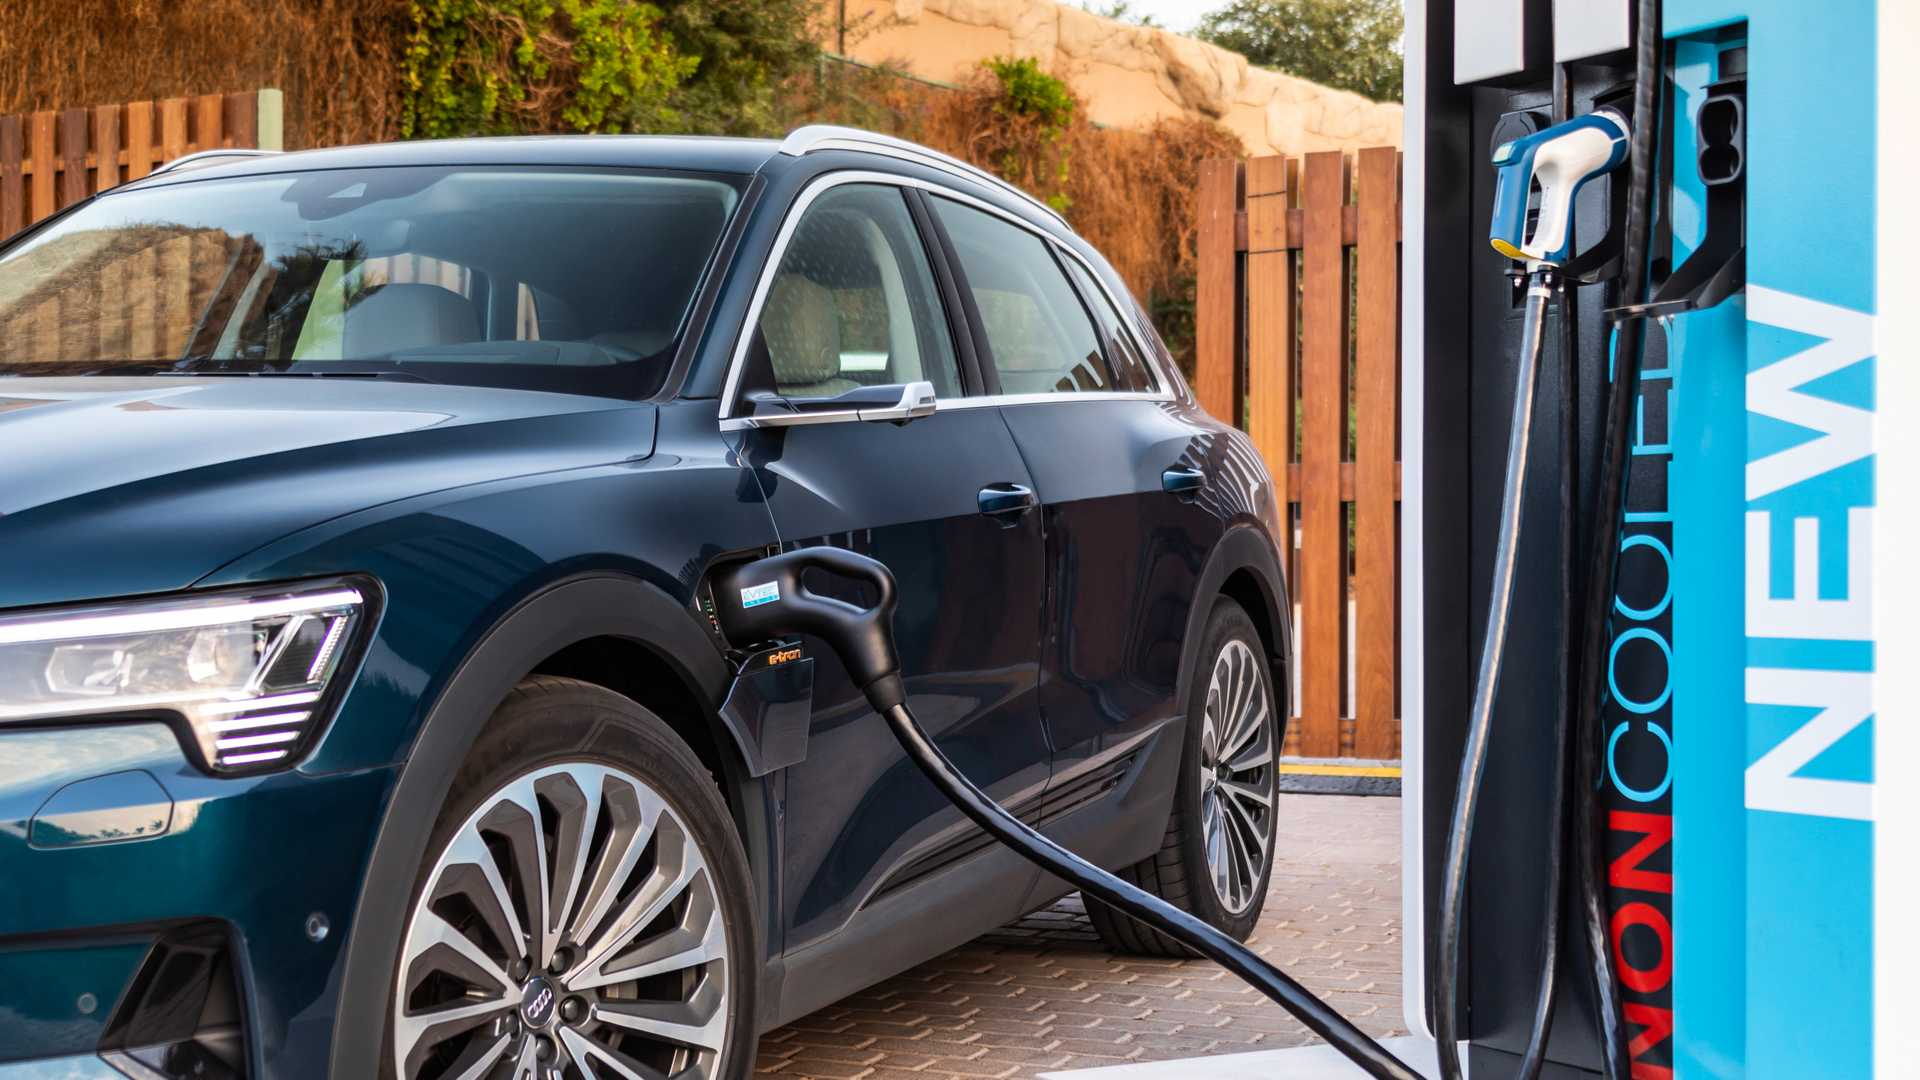 Audi: The e-tron Is Benchmark For DC Fast Charging